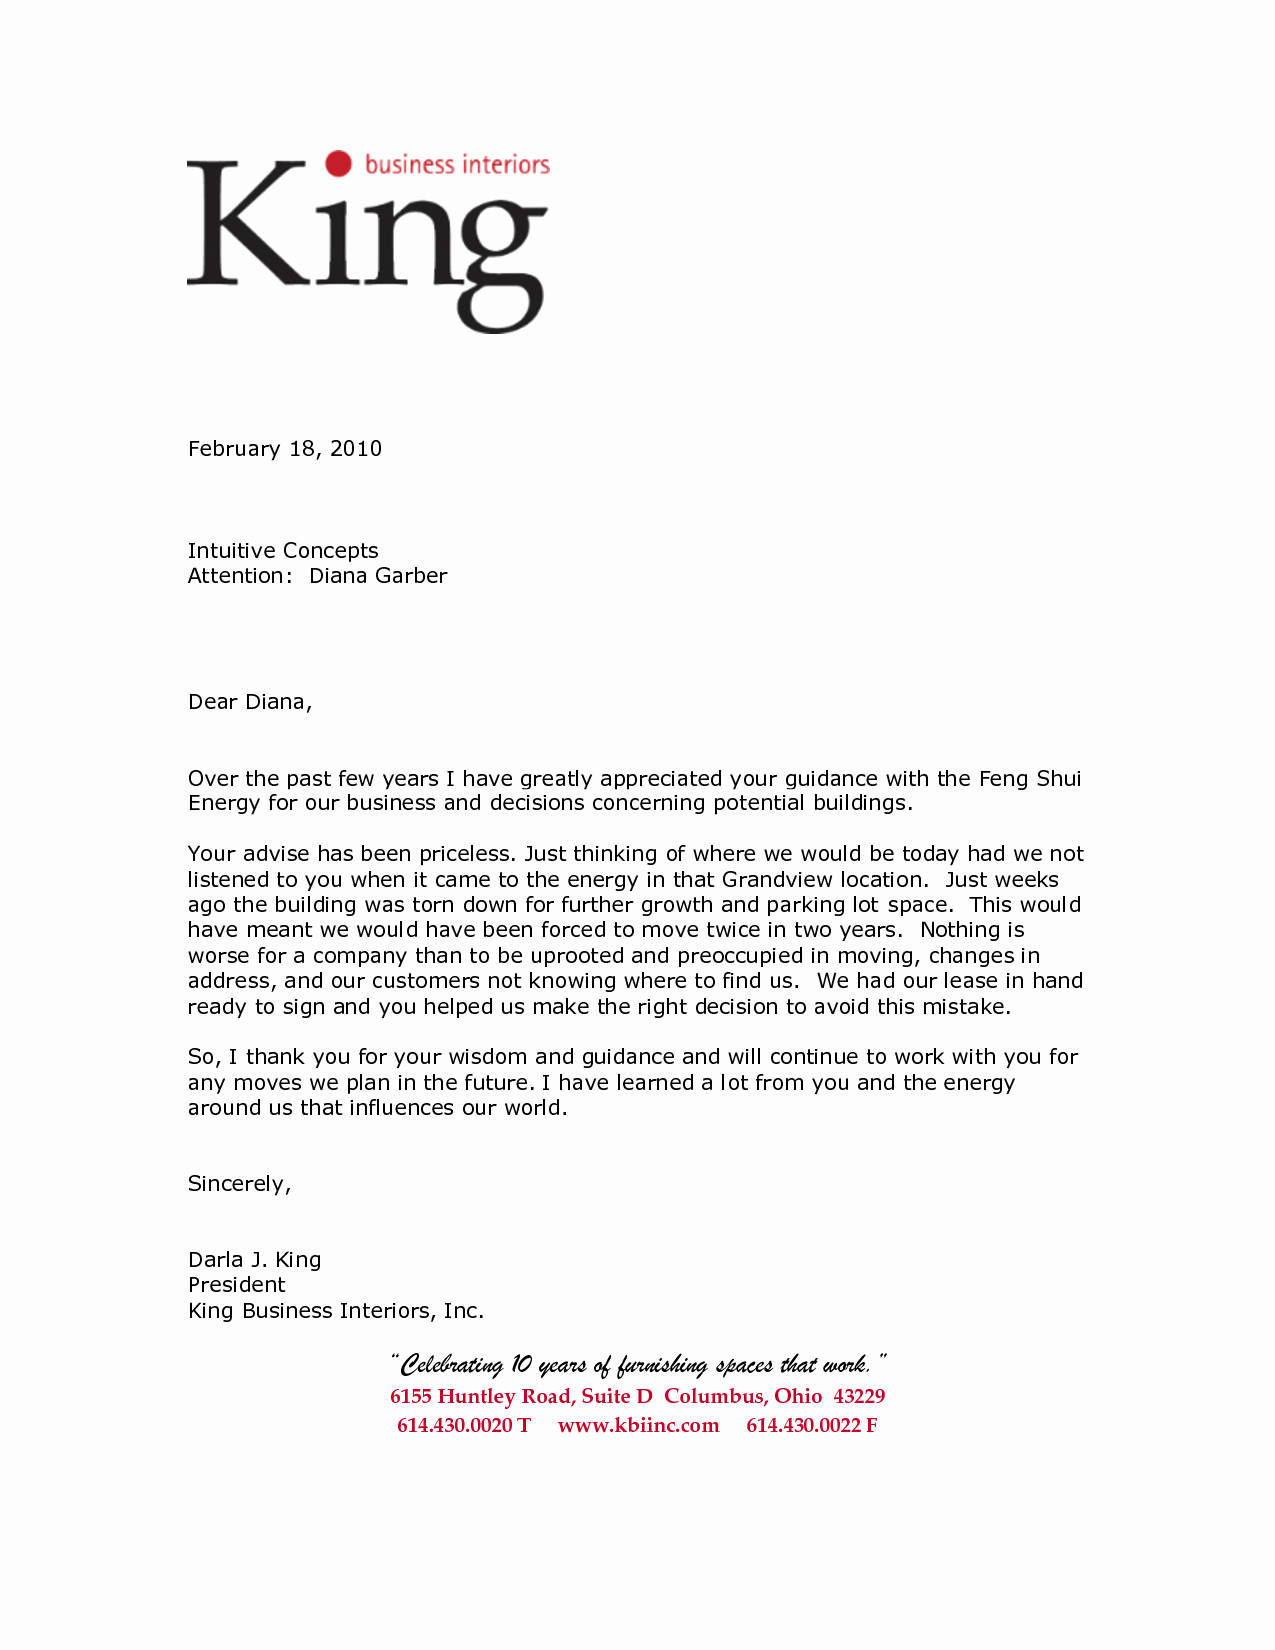 Letter Of Recommendation Letter Template Lovely Business Letter Of Reference Template